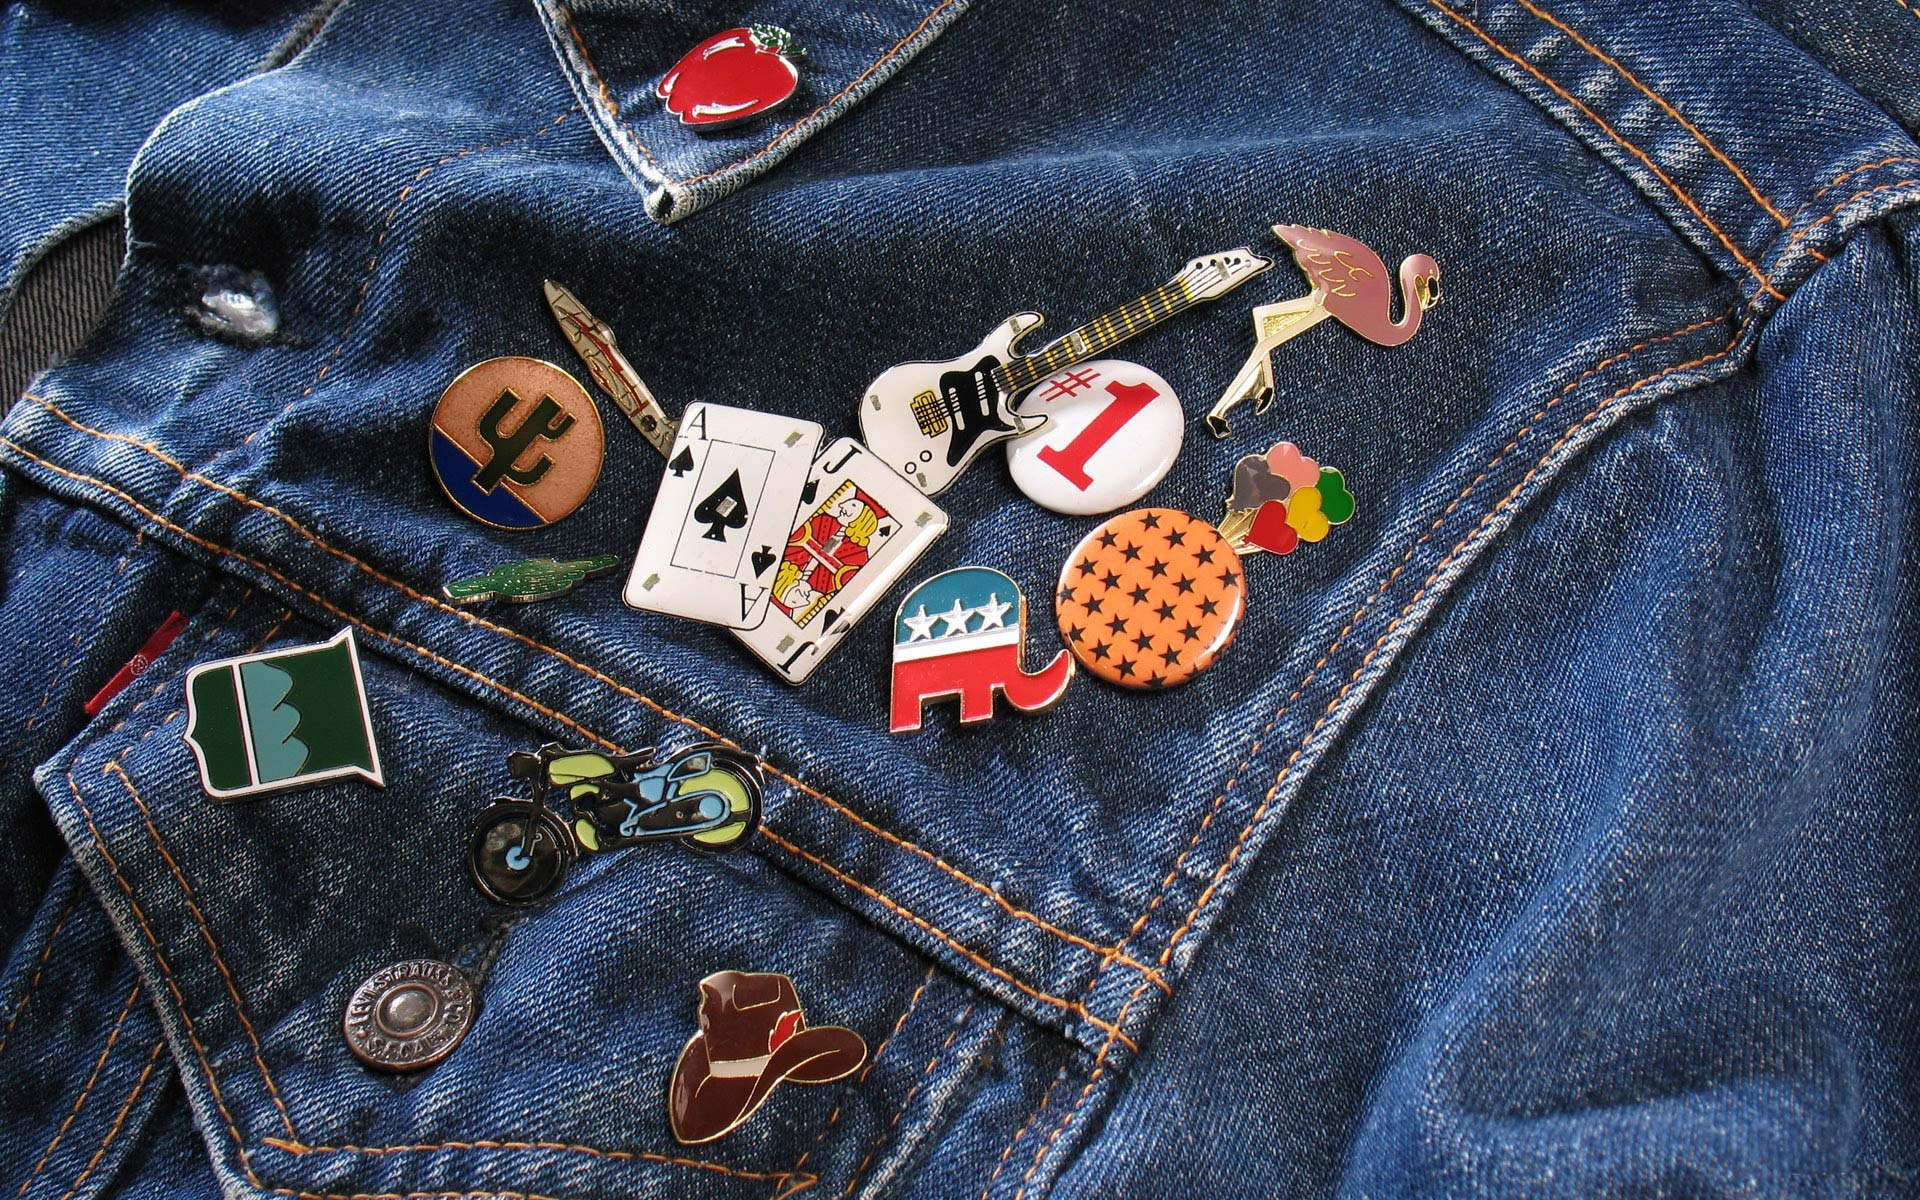 Pins on jeans